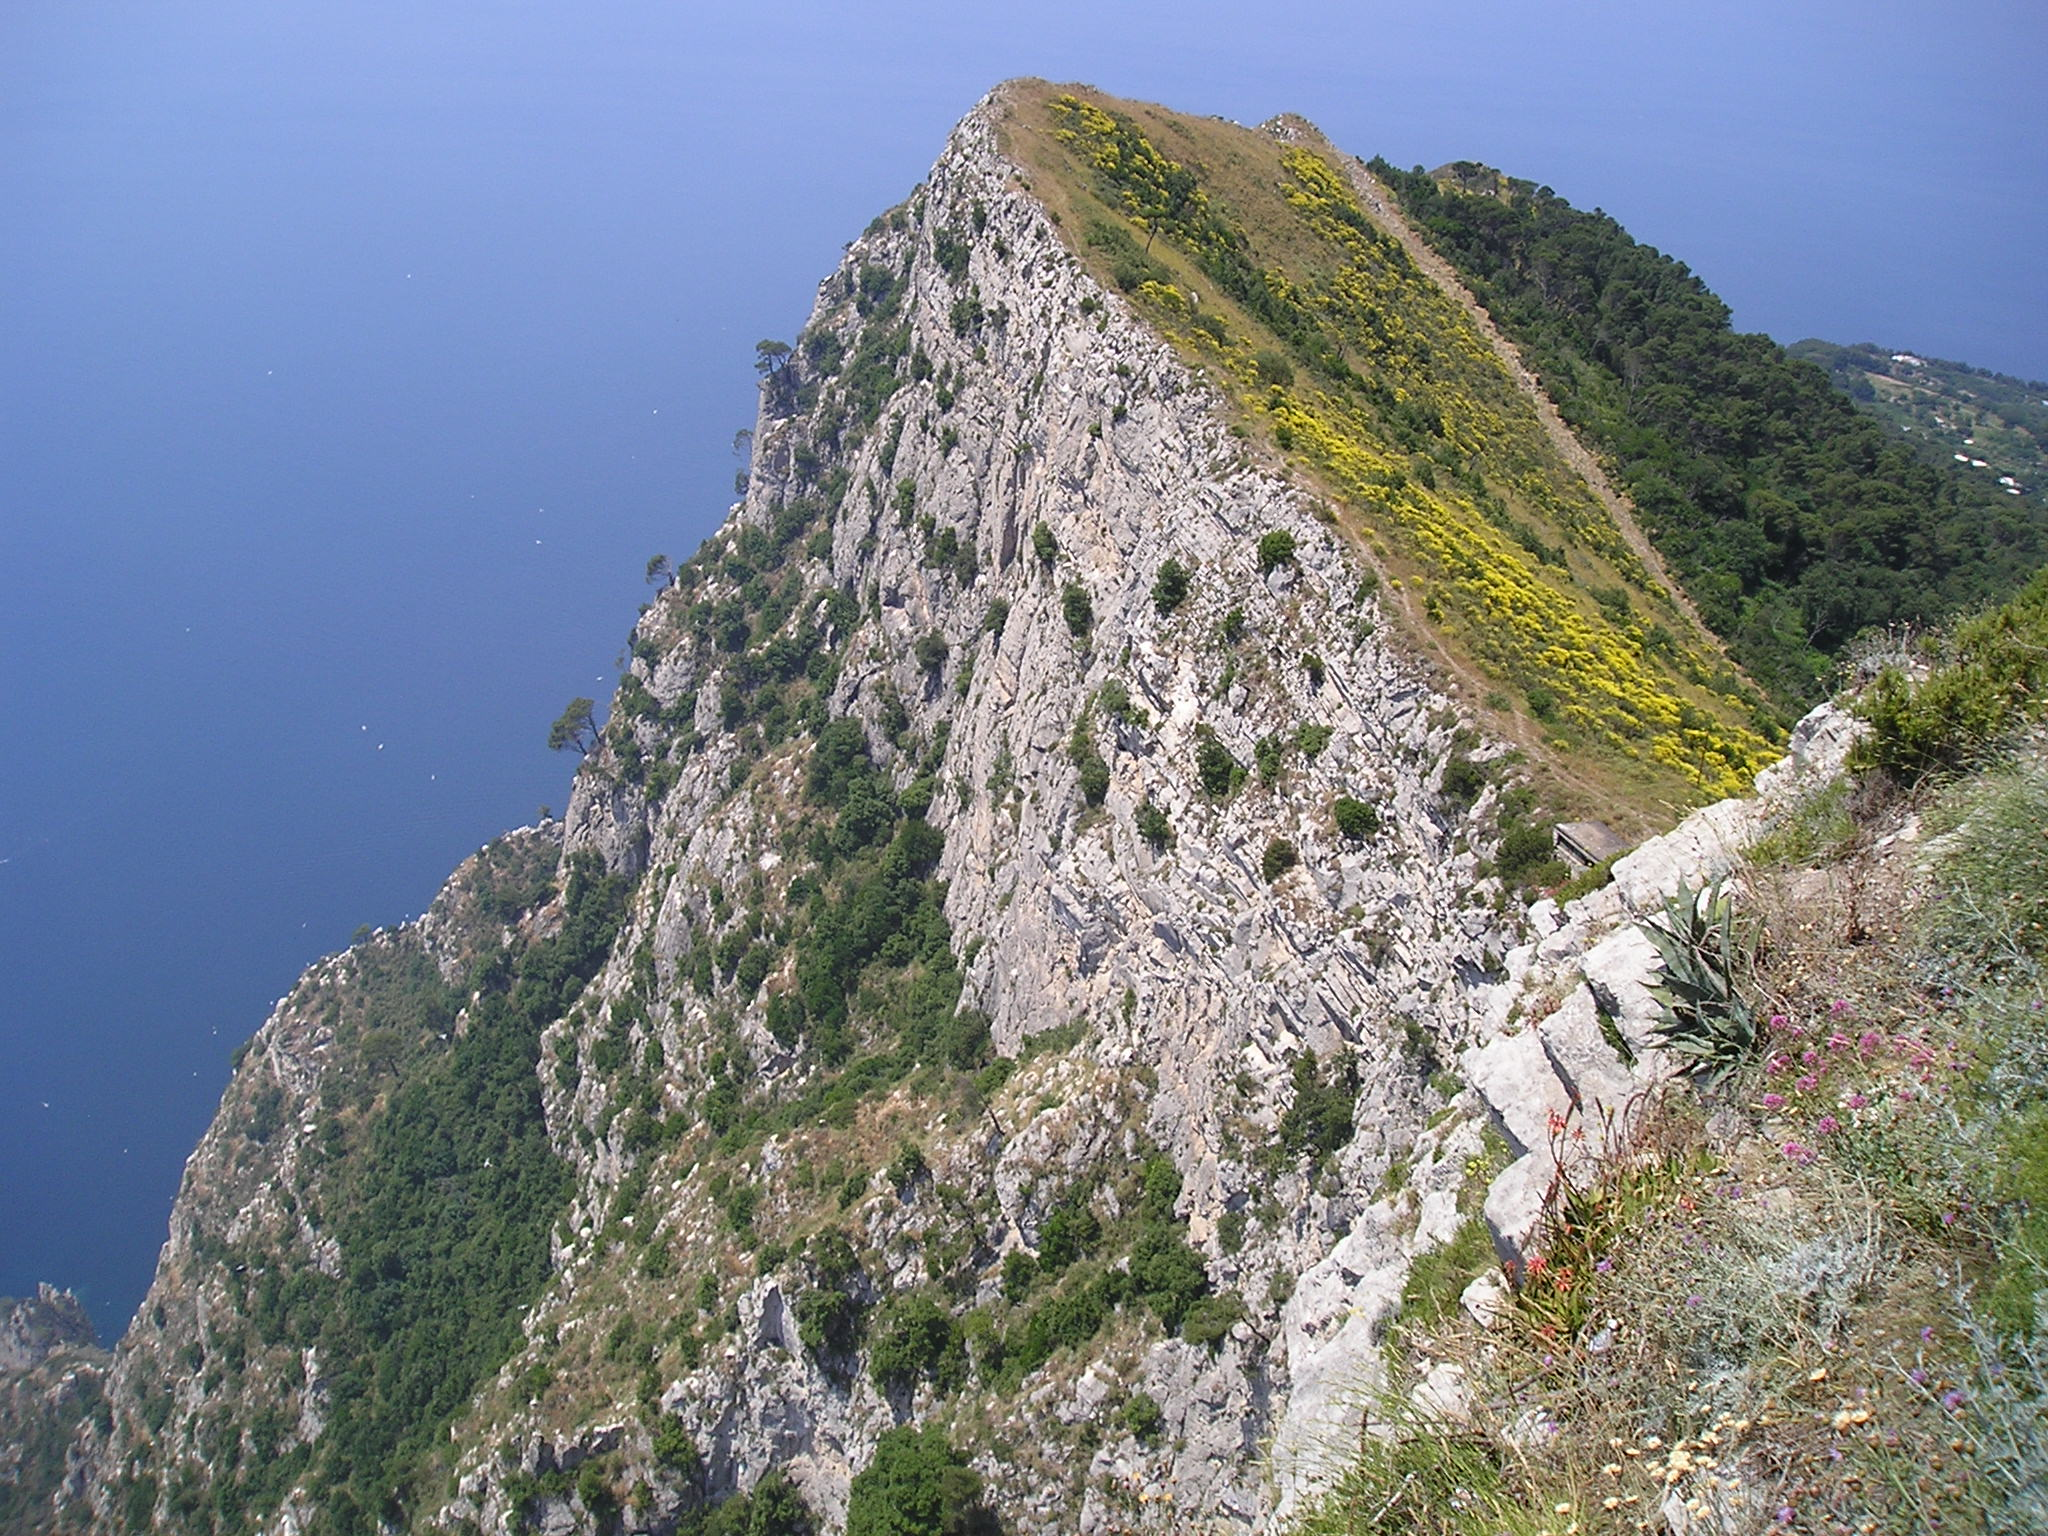 File:Anacapri cliff.jpg